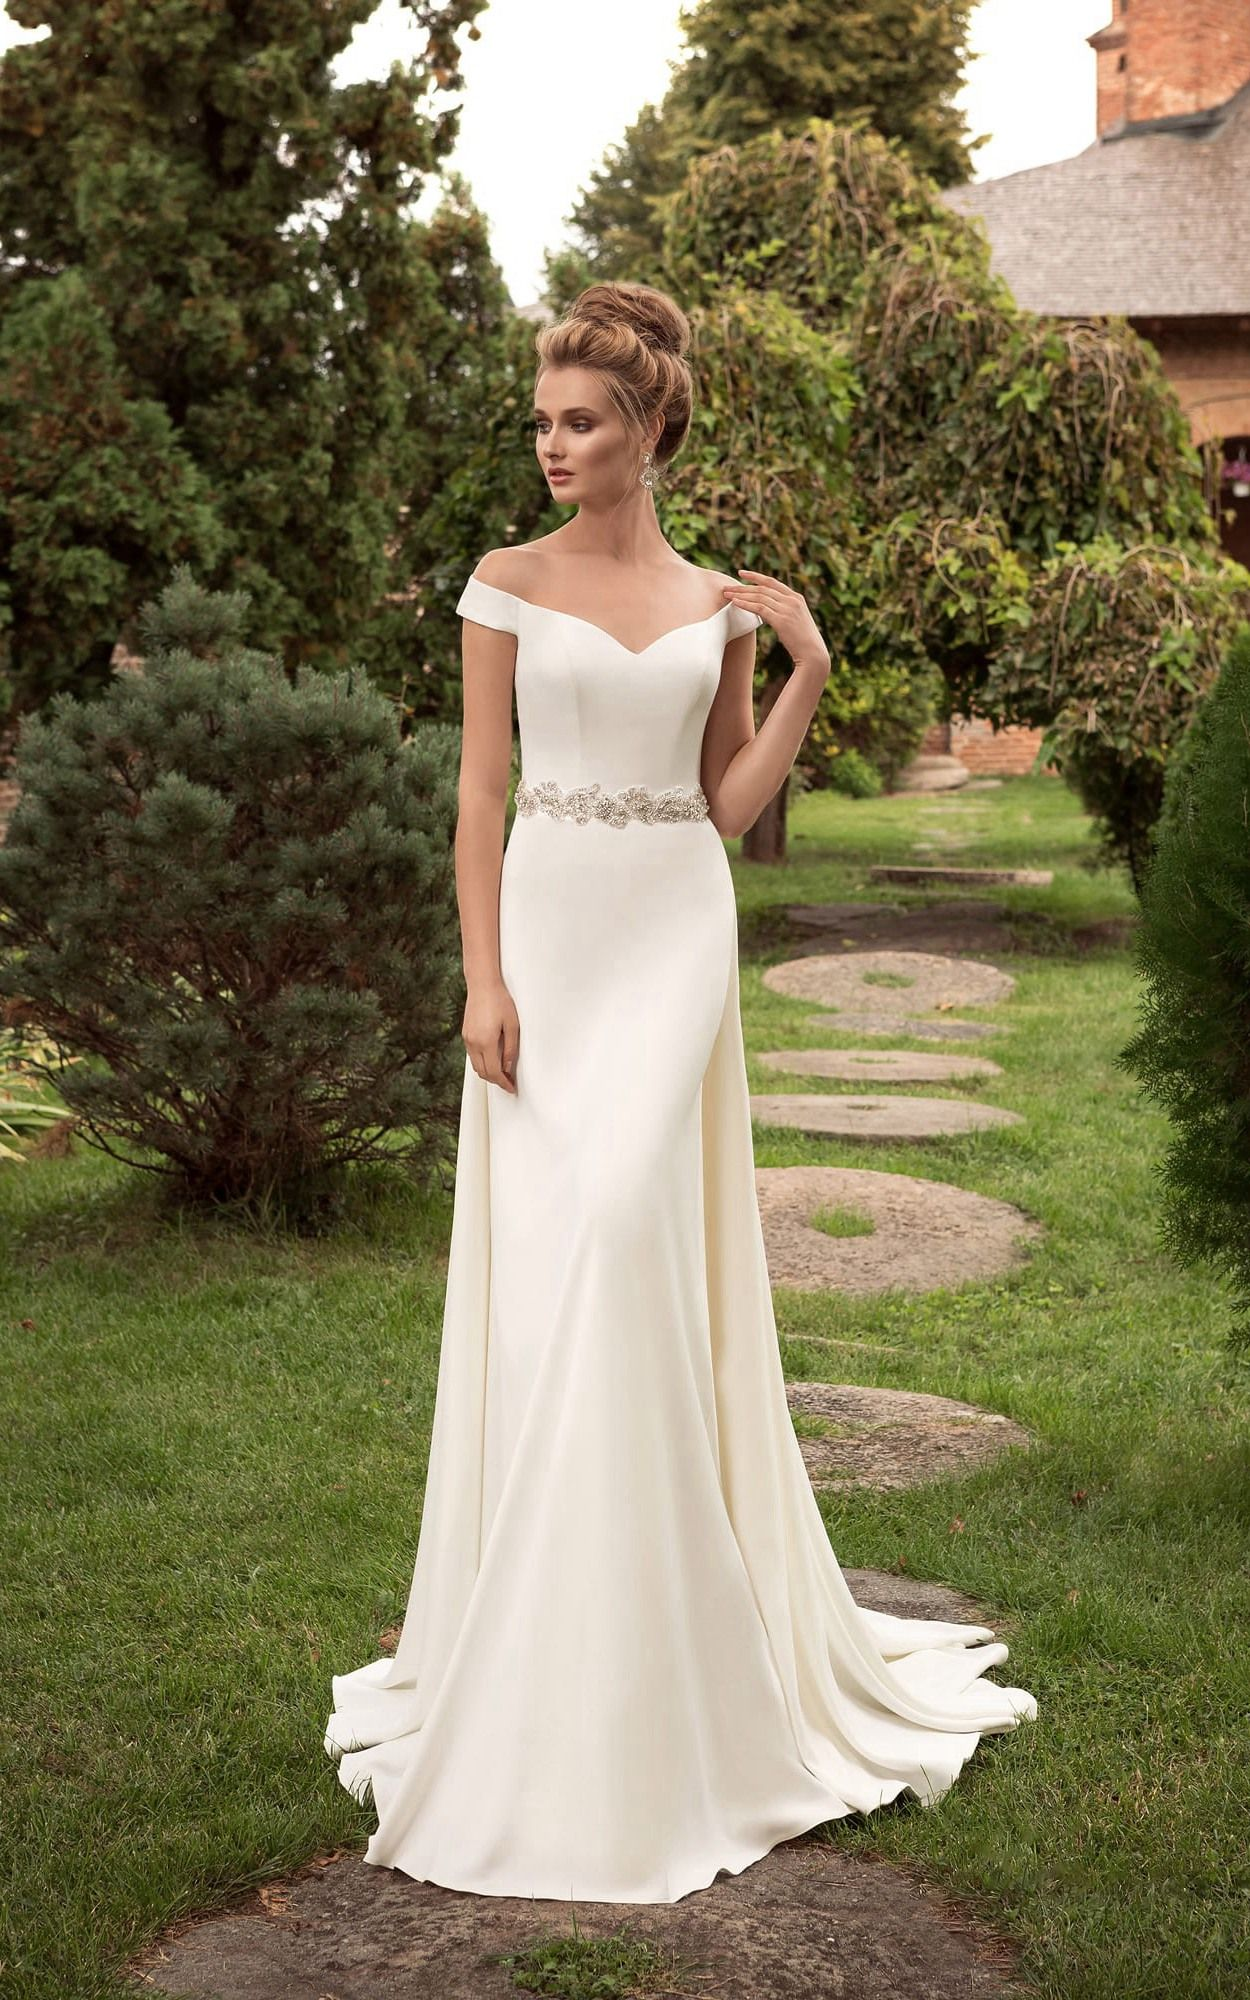 Minimalistic open shoulders wedding dress